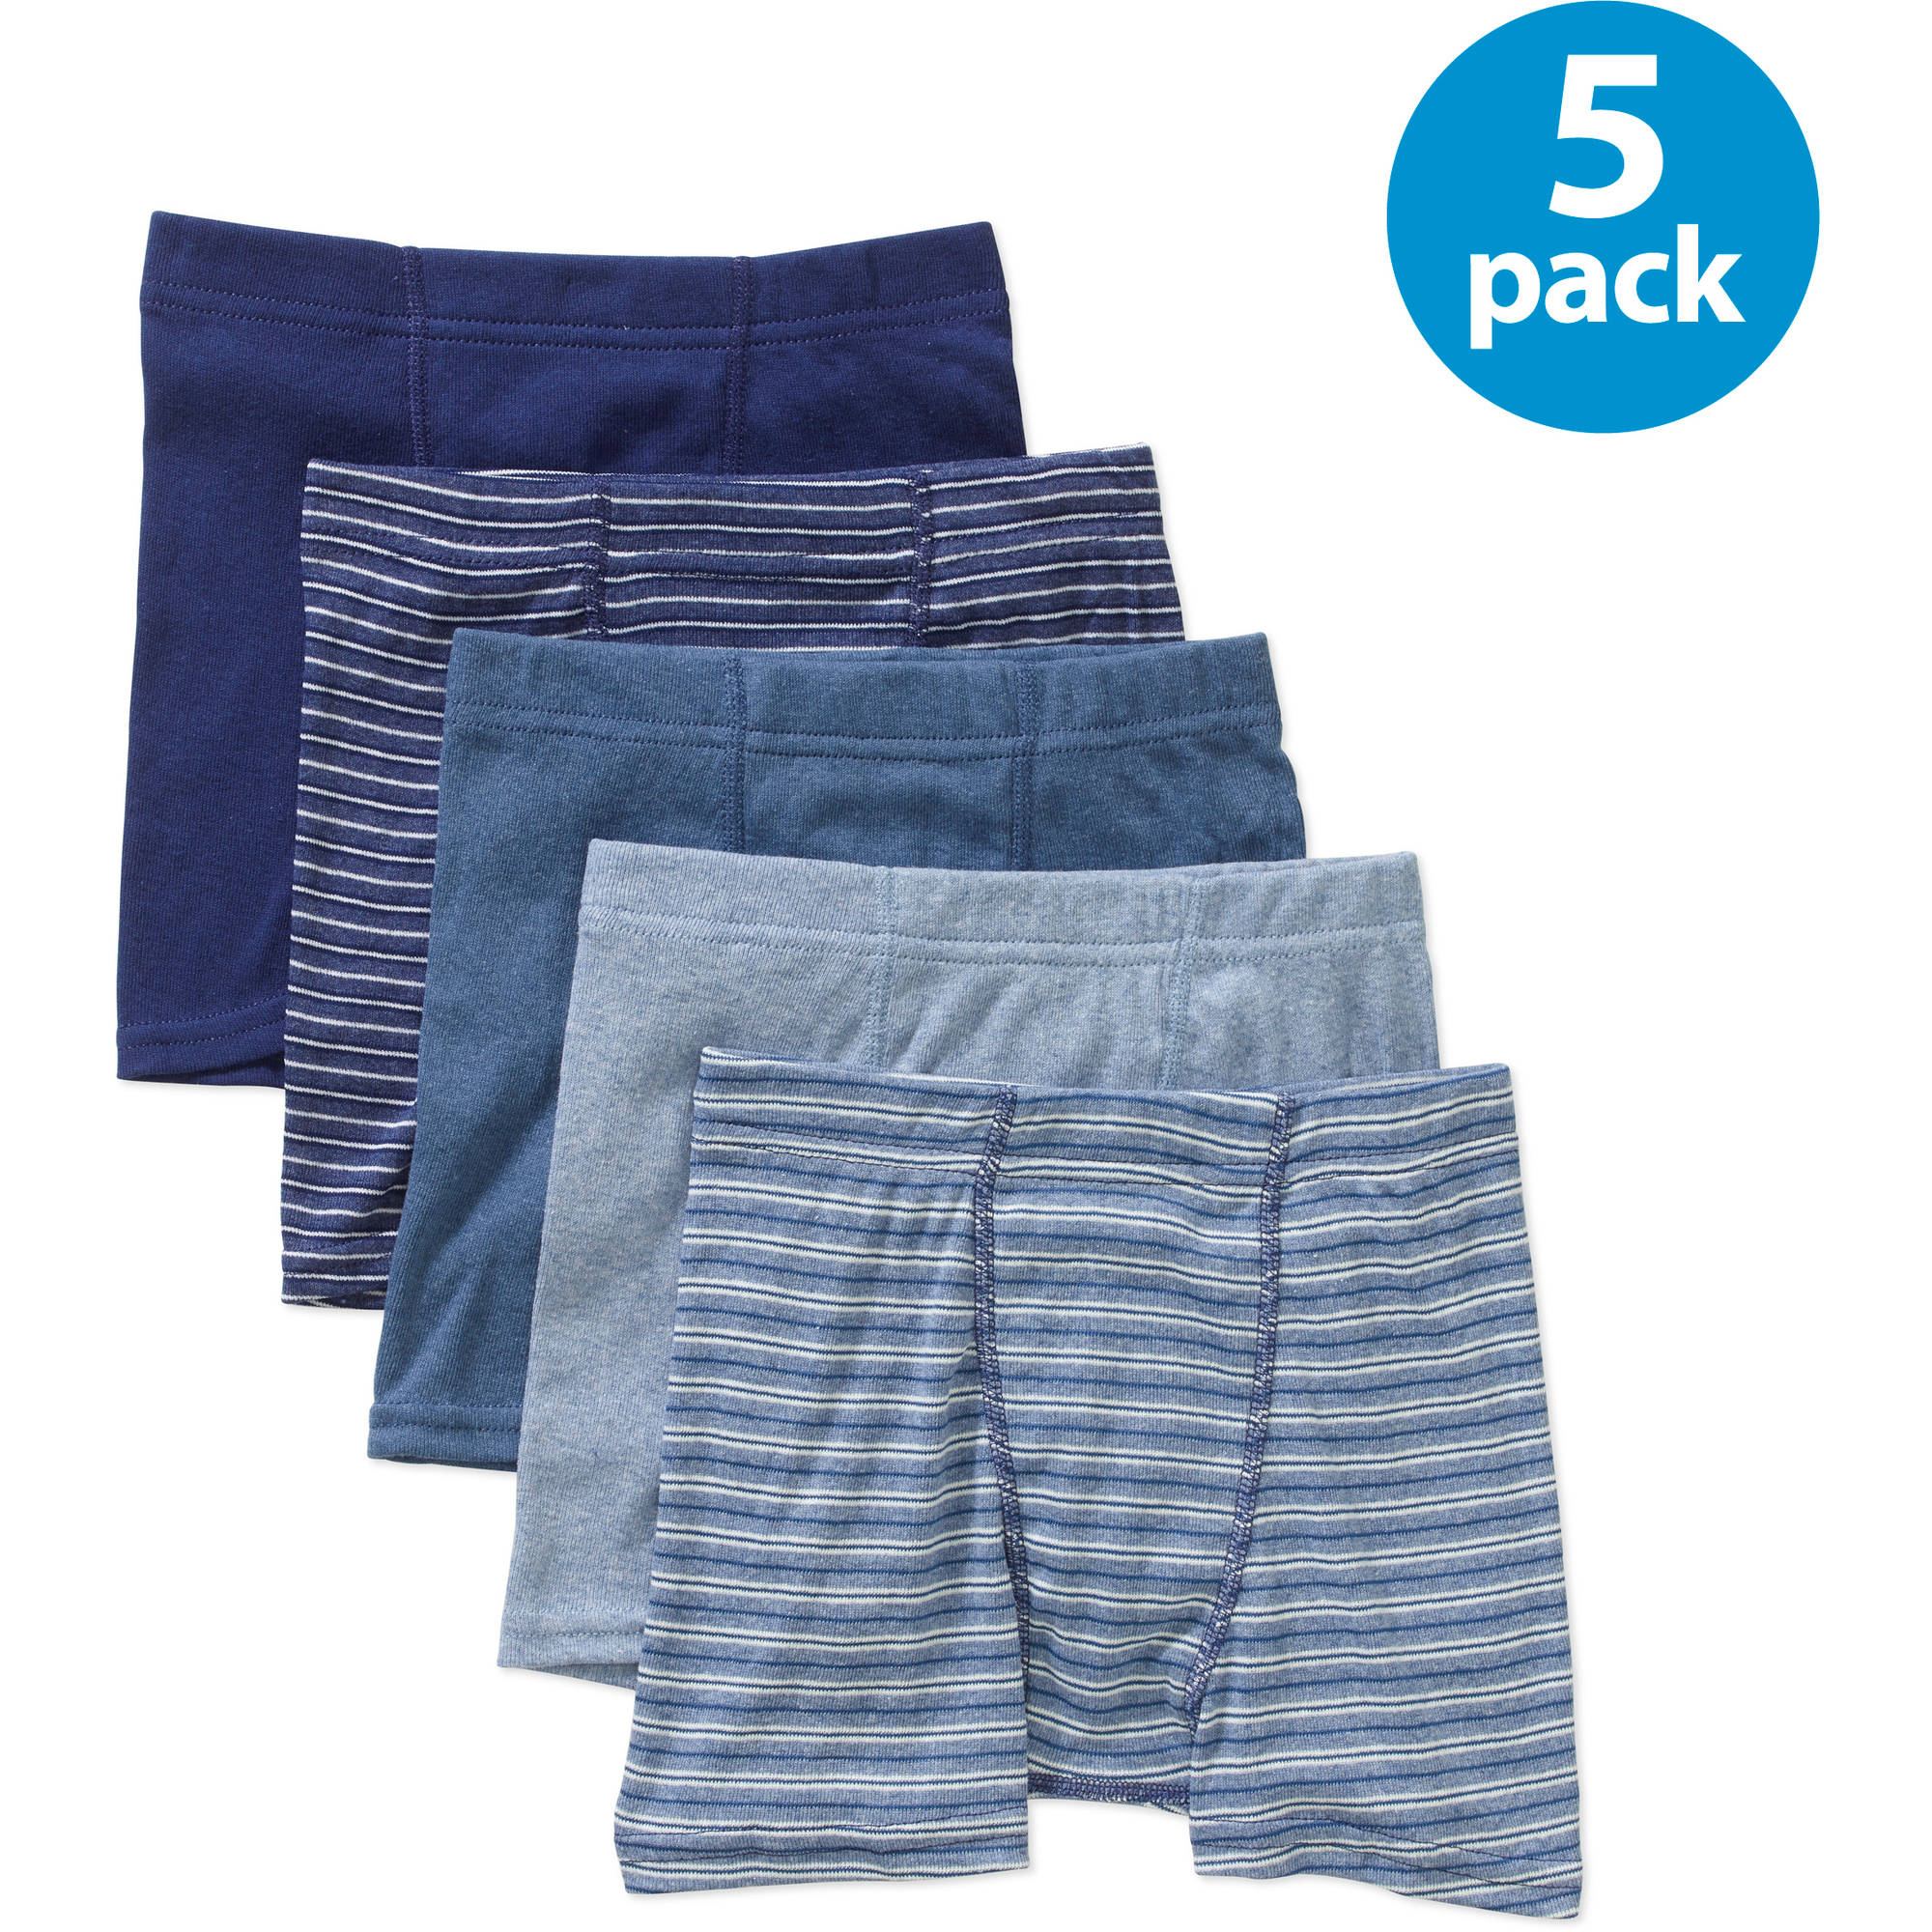 Hanes Boys' Boxer Briefs, 5-Pack